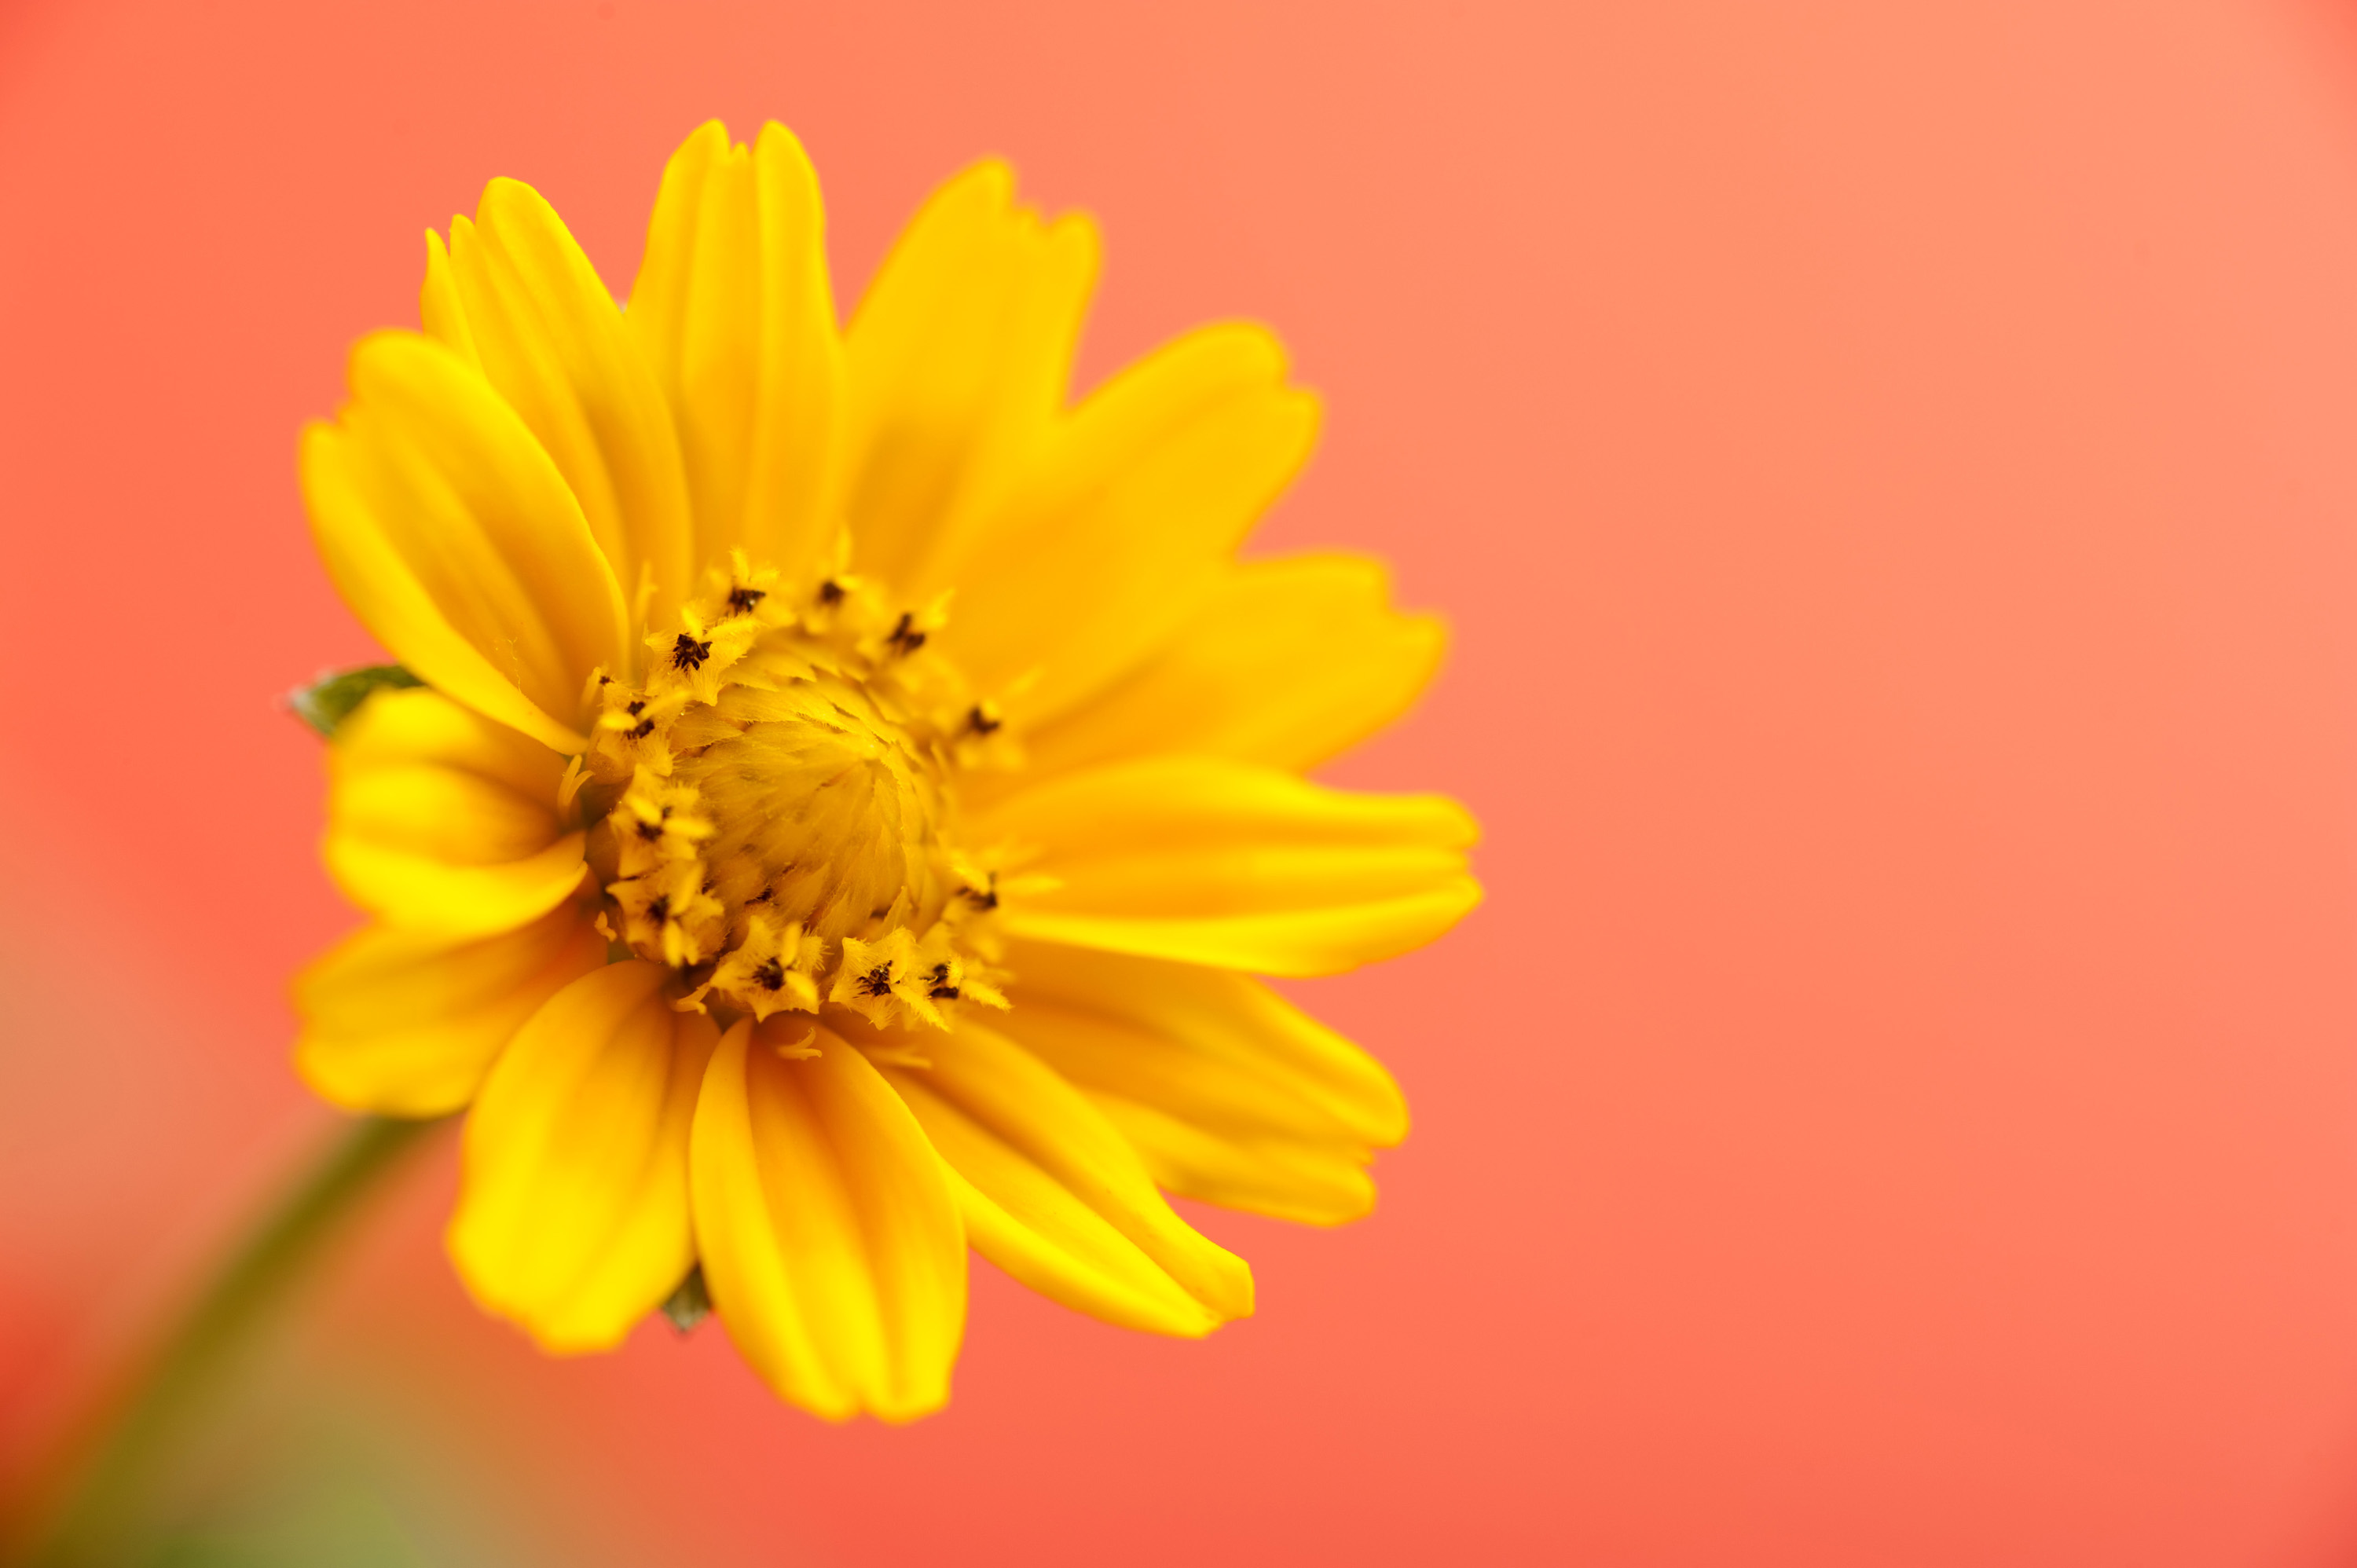 yellow_daisy.jpg - Beautiful yellow flower head in bloom as close up with light orange background. Includes copy space.